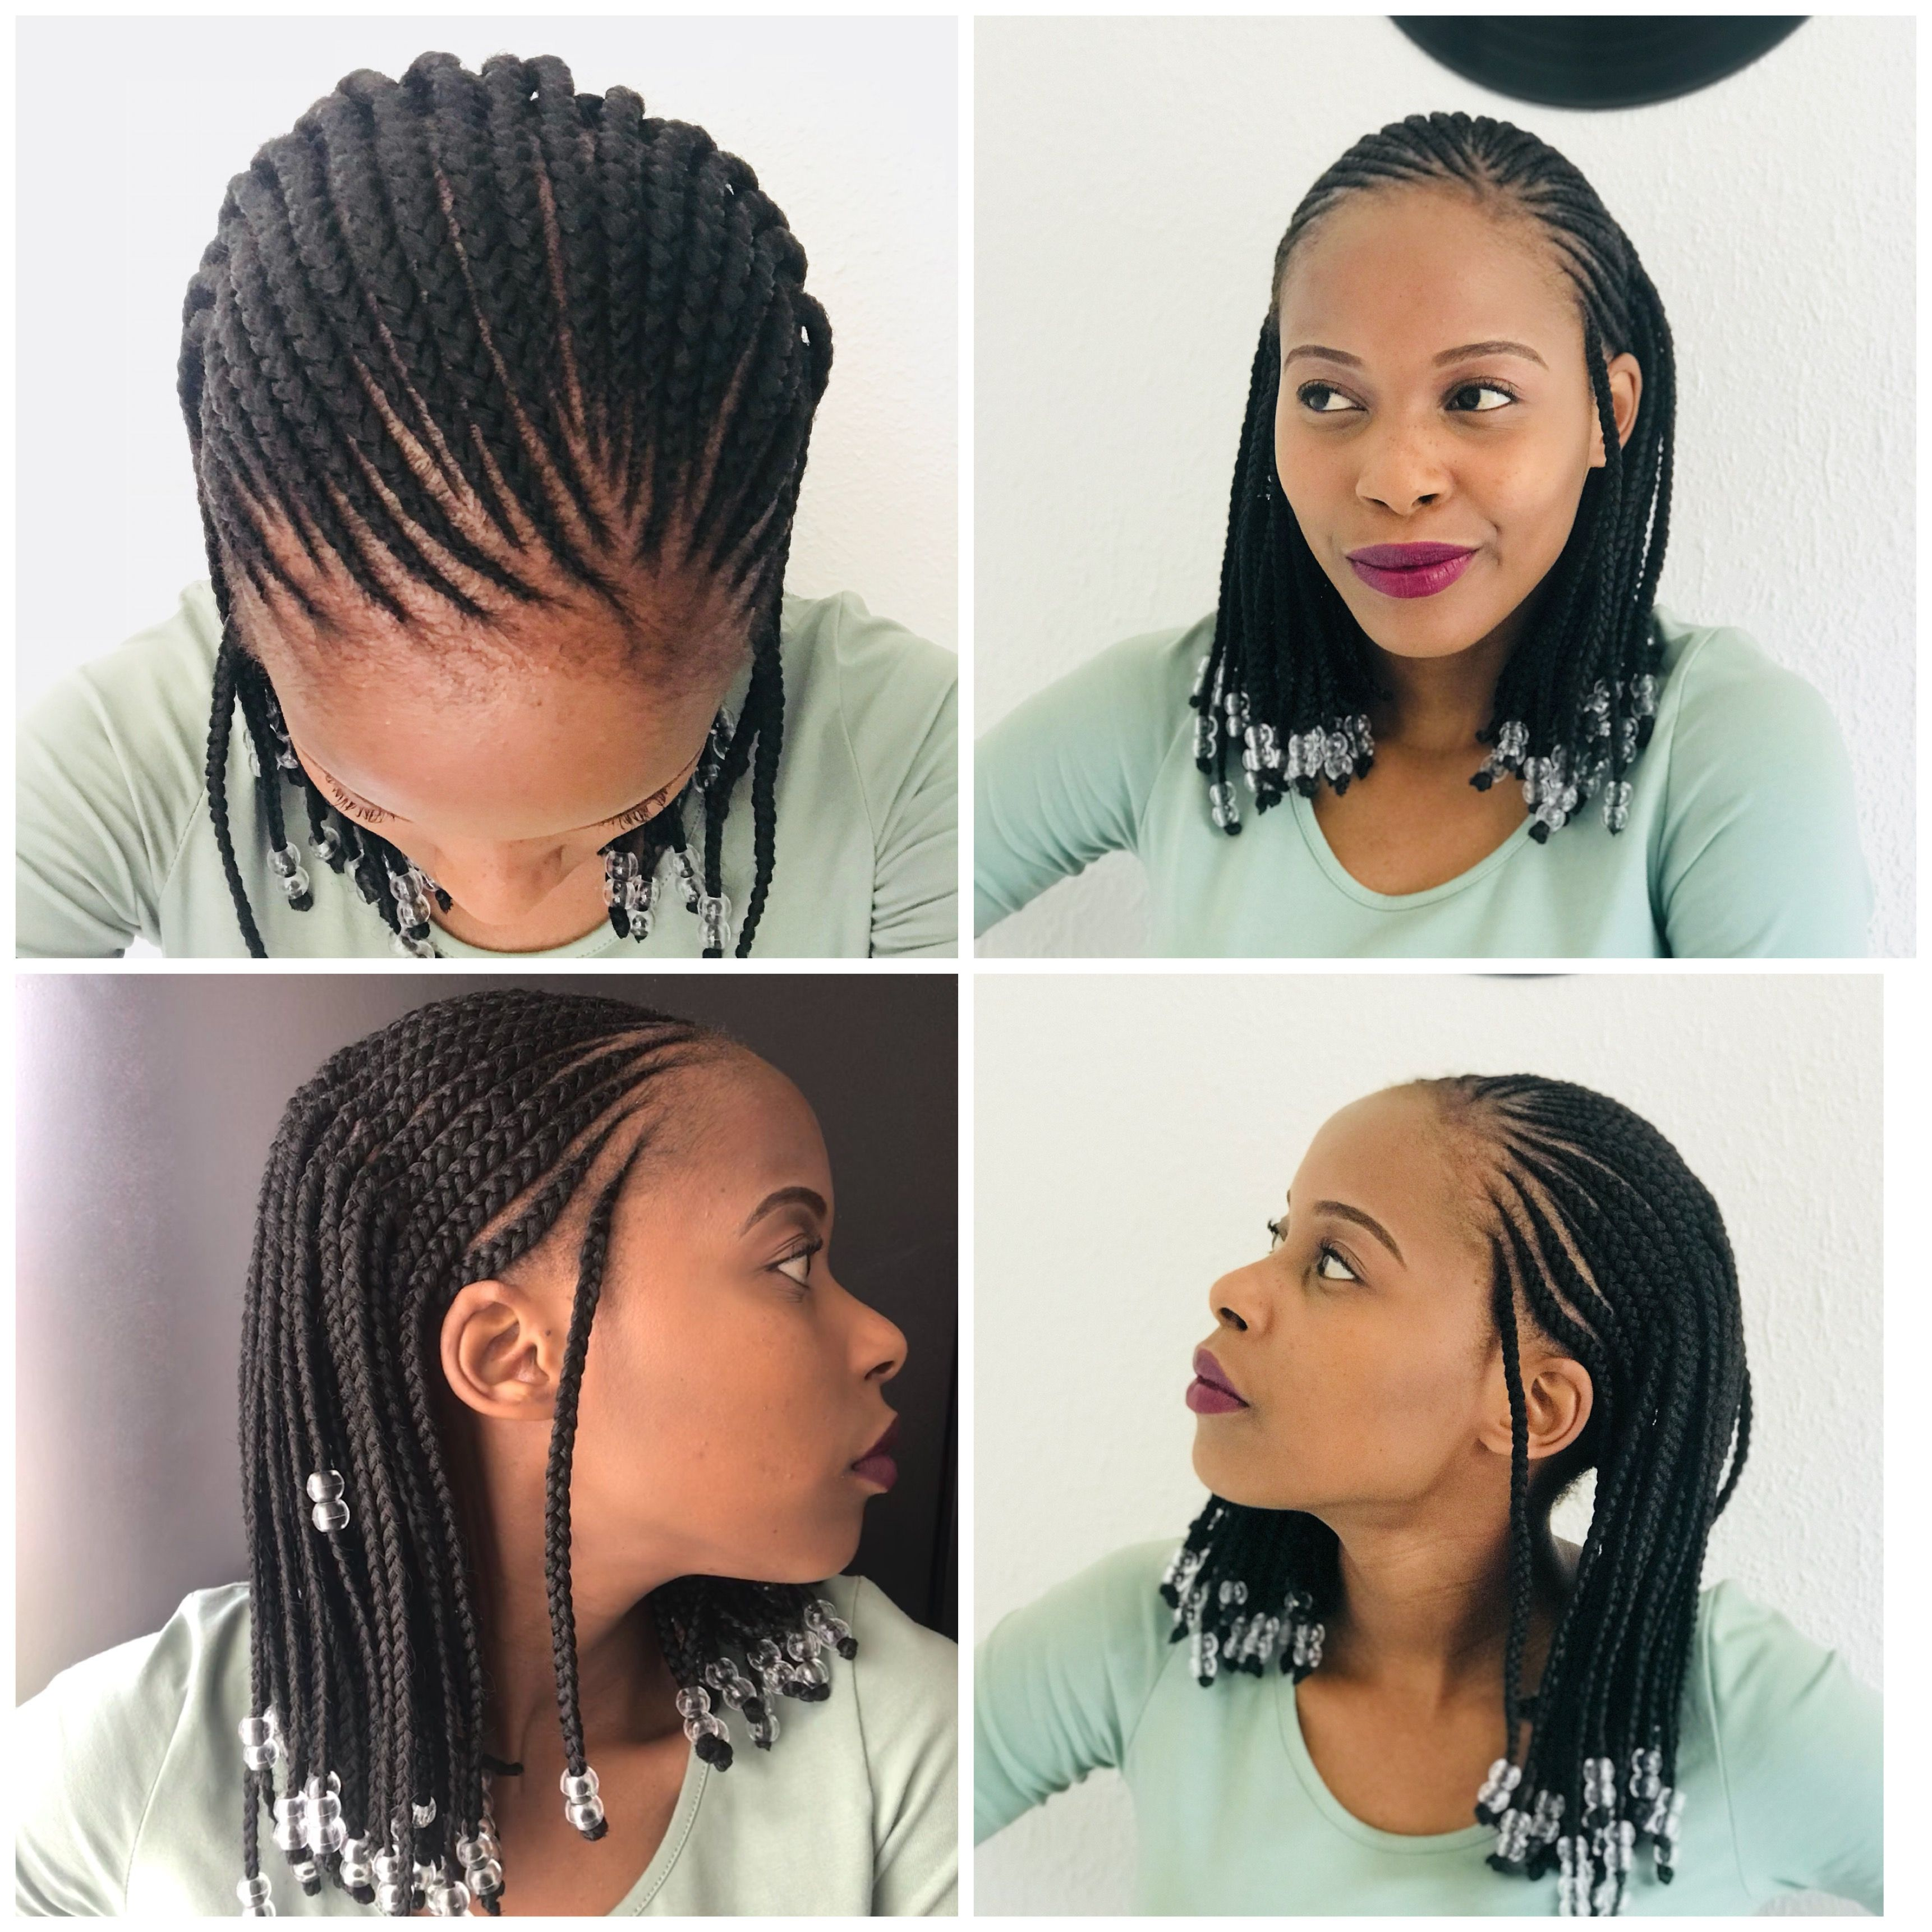 Alicia keys inspired cornrows and braids with beads